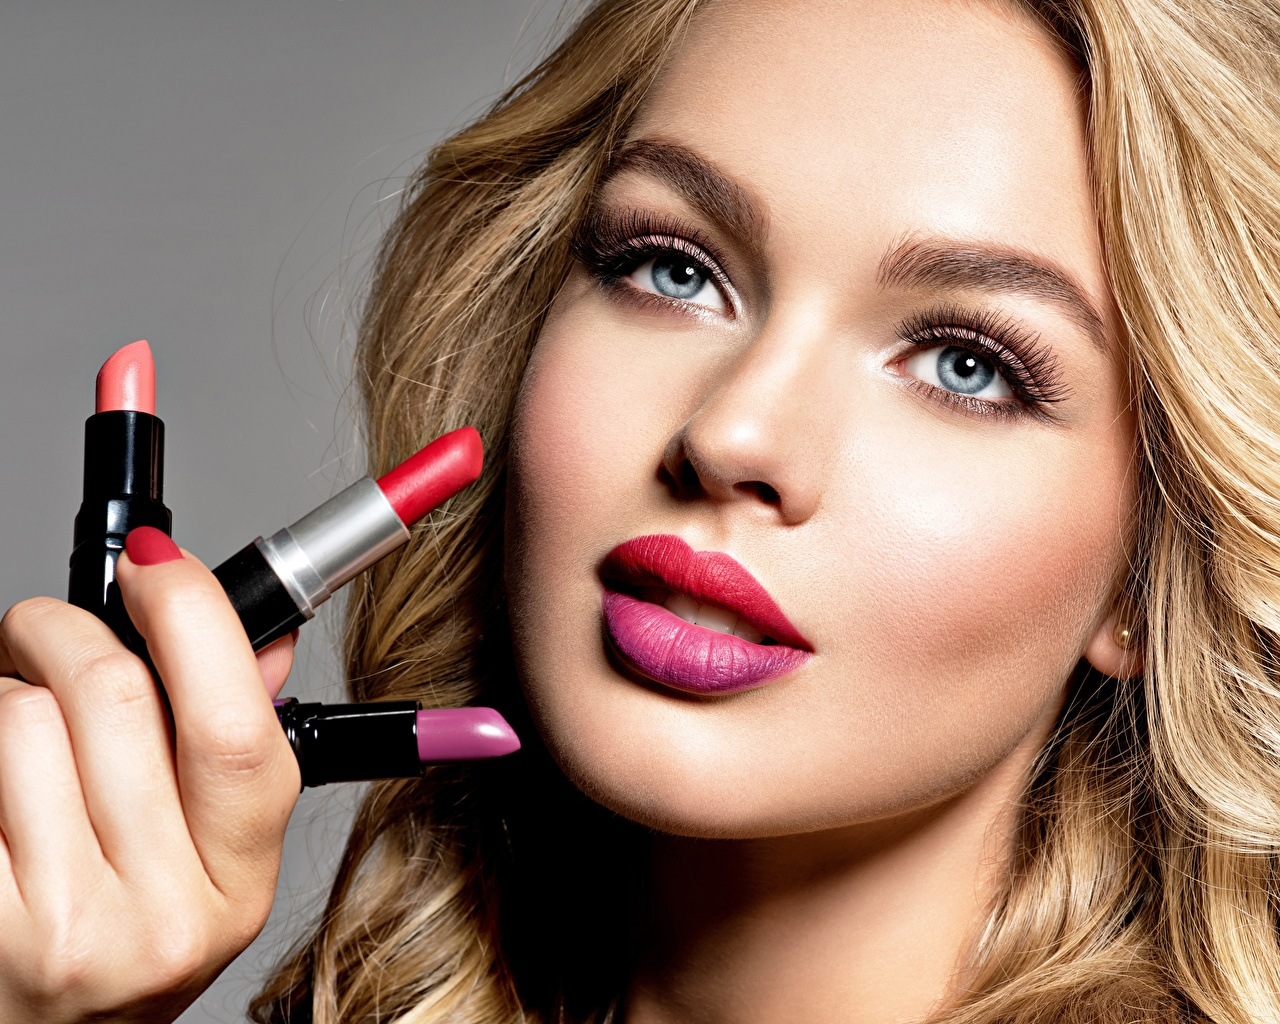 Pictures Girls Lipstick Glance Makeup Face Staring